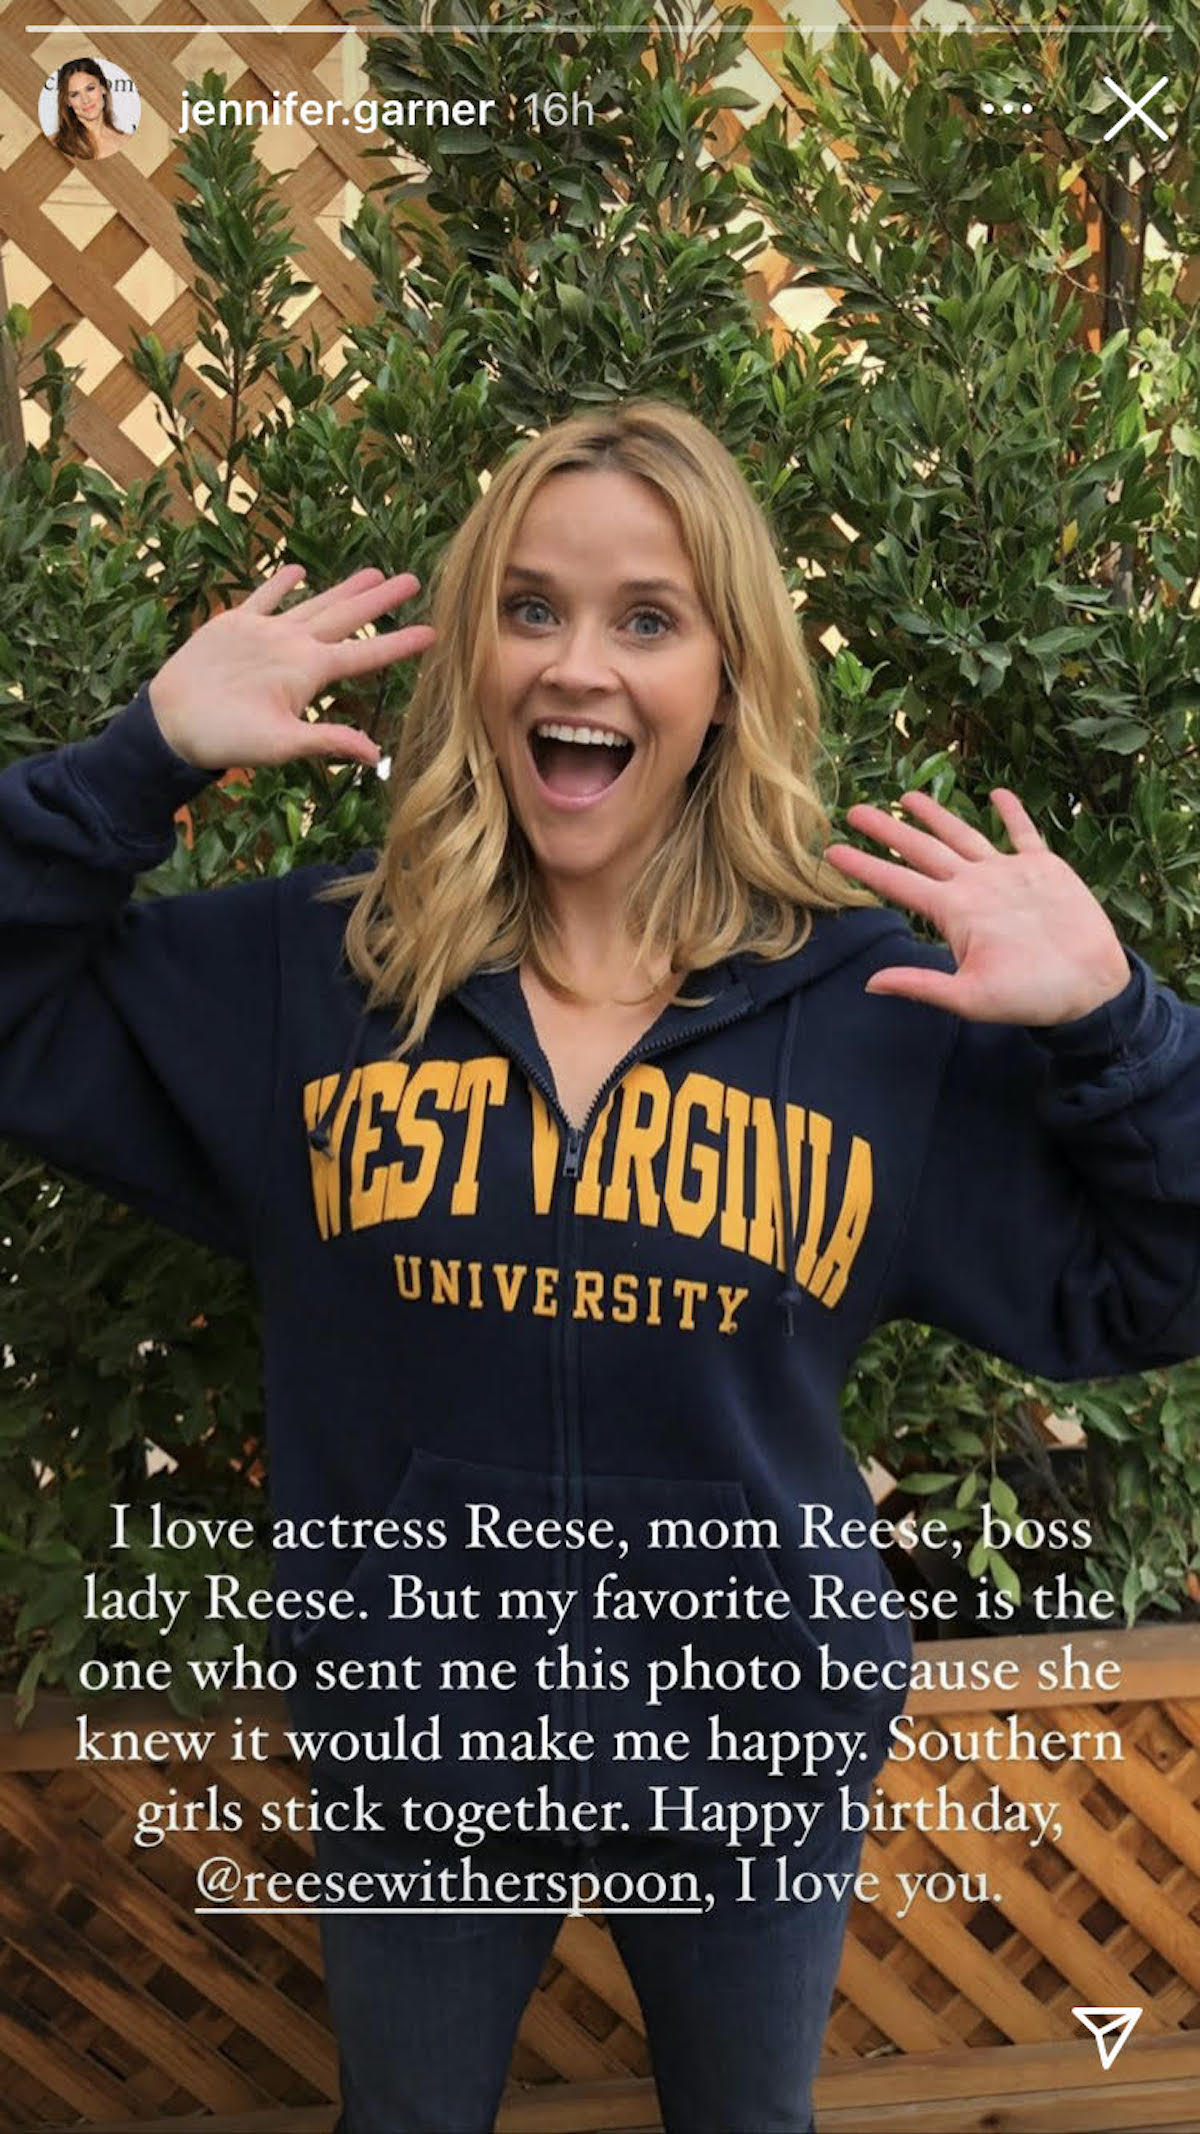 Jennifer Garner's post to Reese Witherspoon